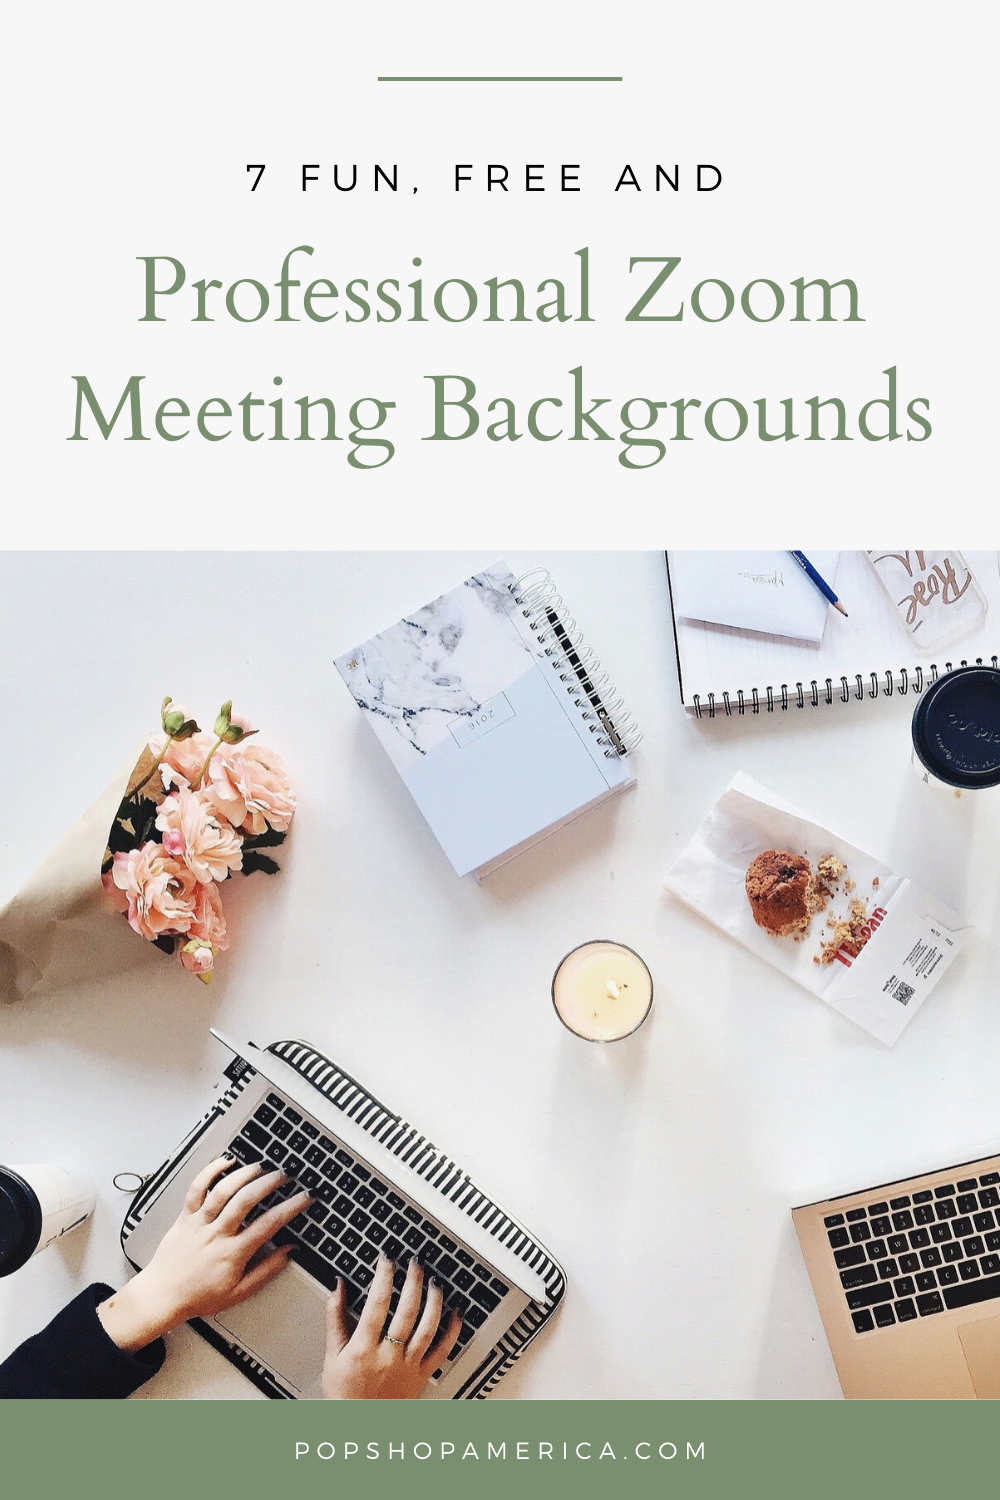 7 Fun Free And Professional Zoom Meeting Backgrounds How To Start A Blog Work Organization Productive Things To Do